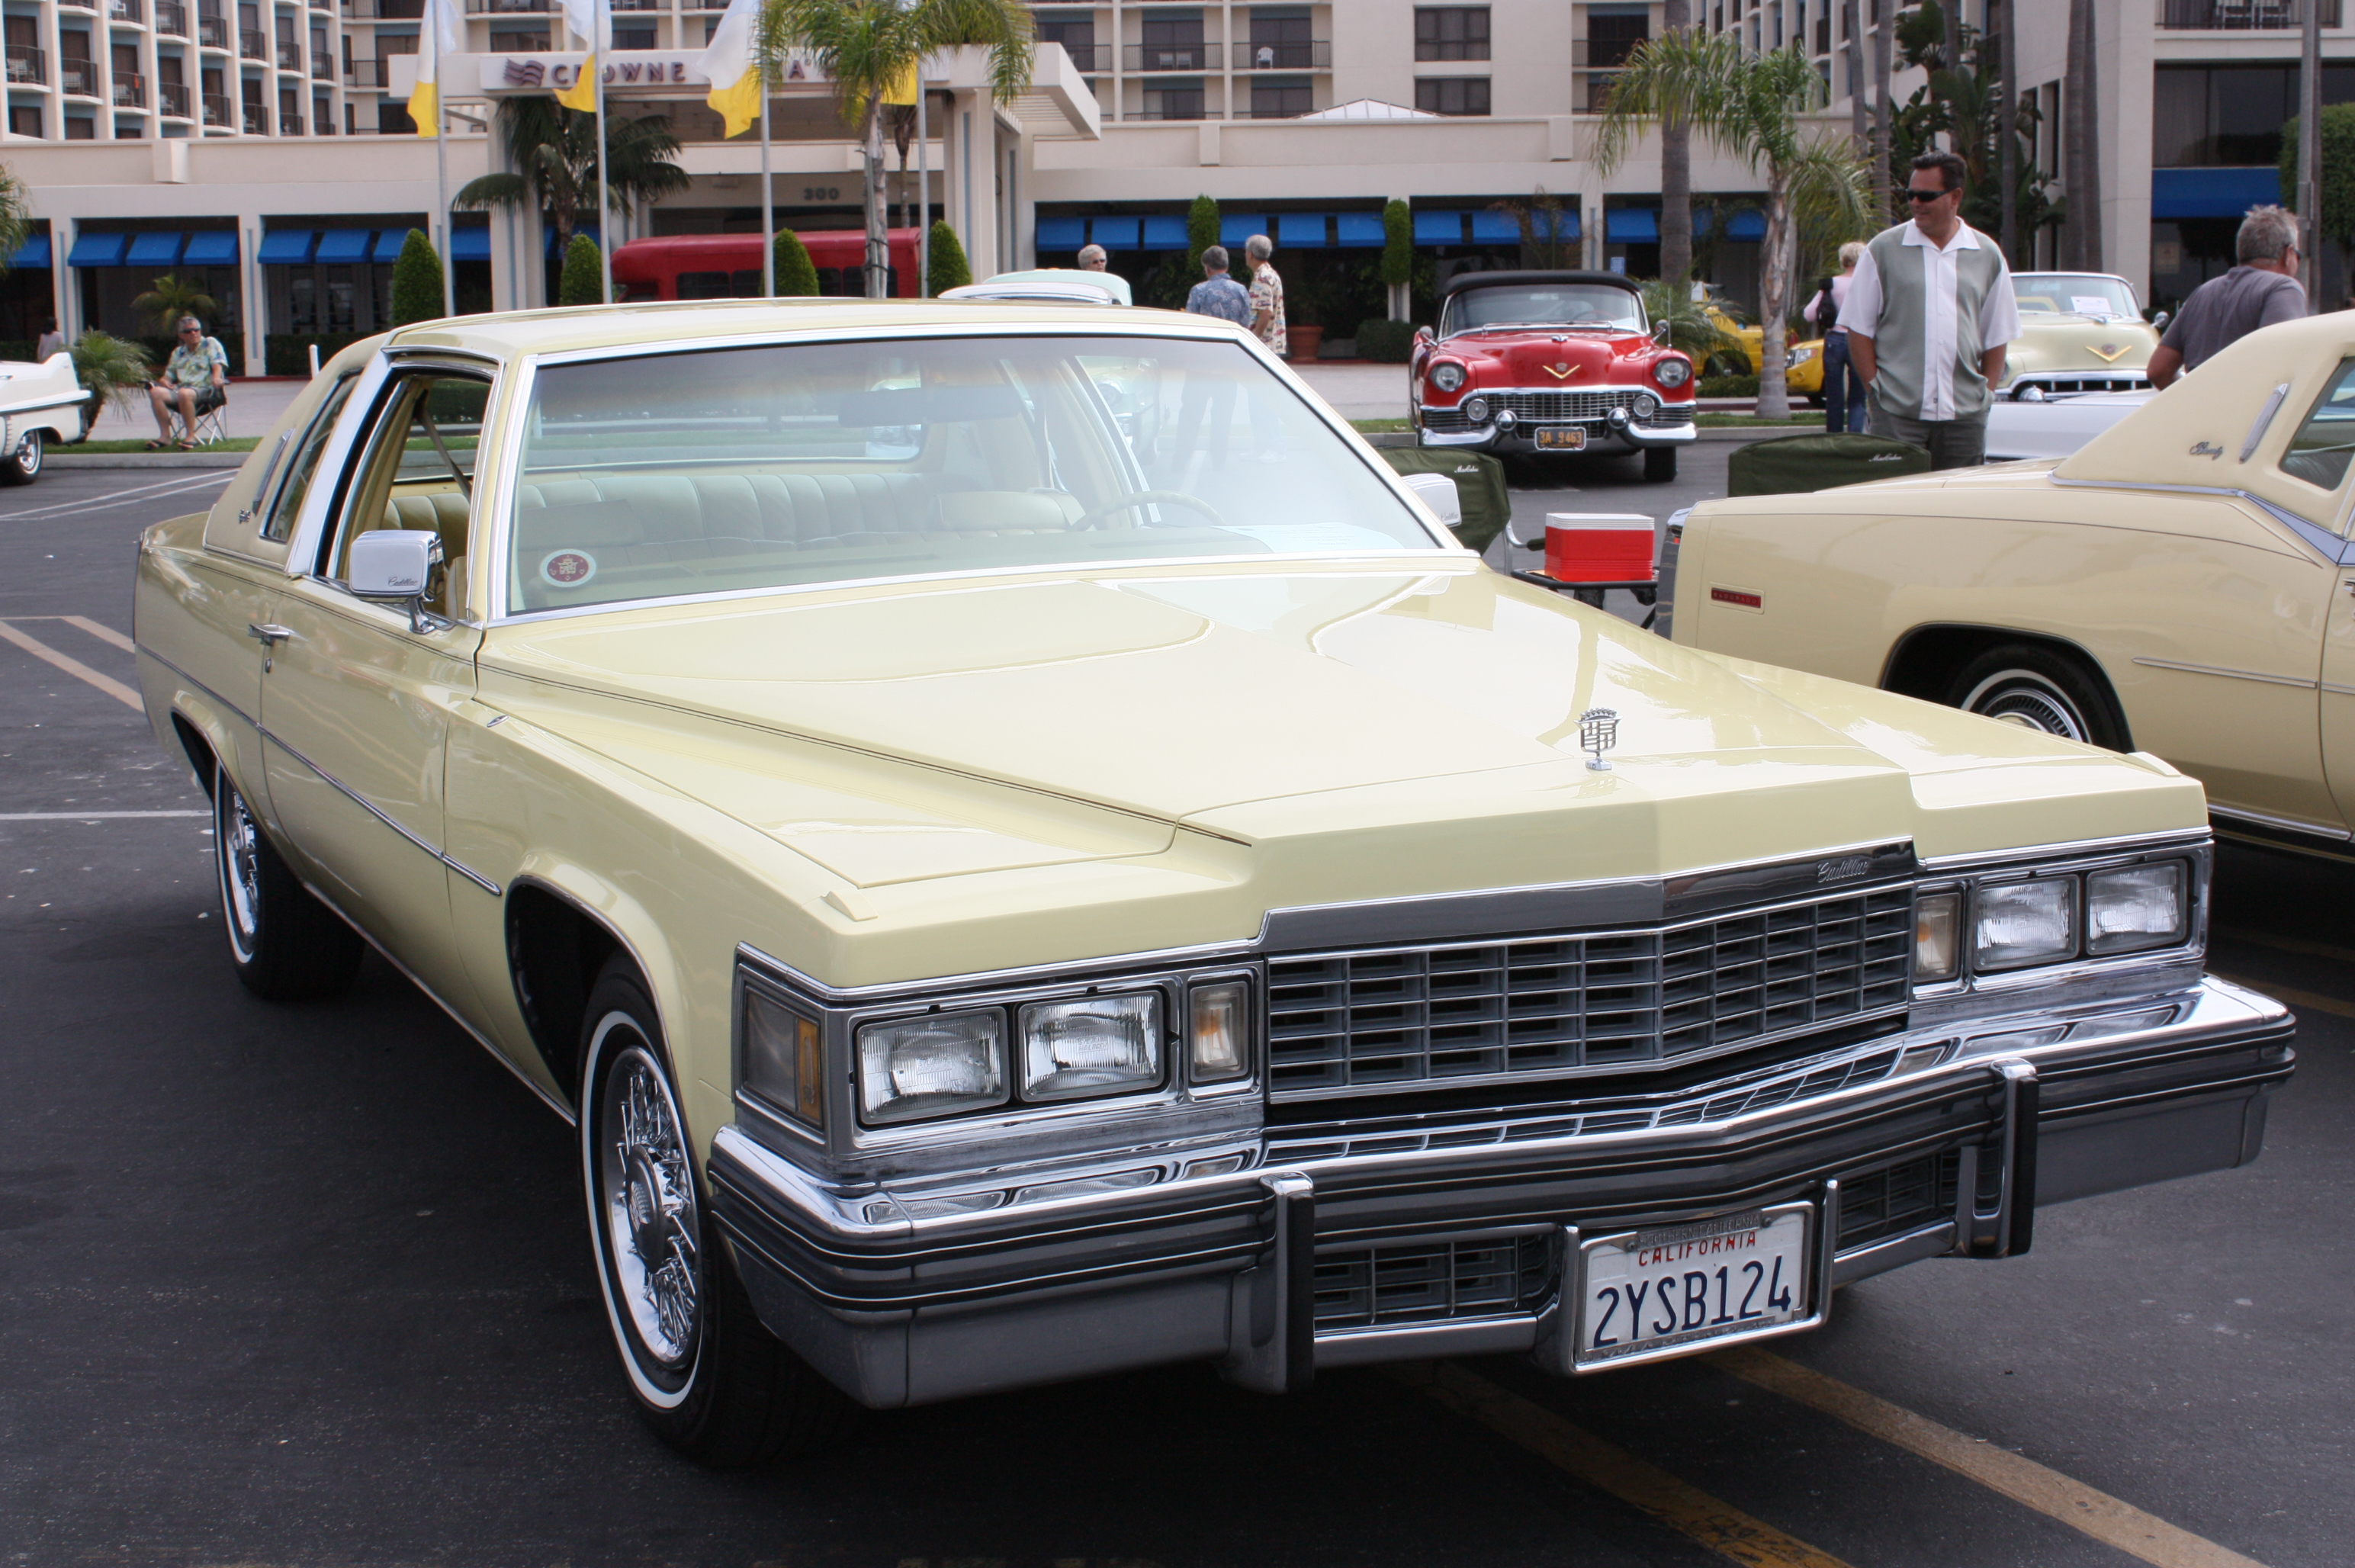 1977 cadillac coupe deville 1024 x 770 1977 cadillac coupe deville. Cars Review. Best American Auto & Cars Review